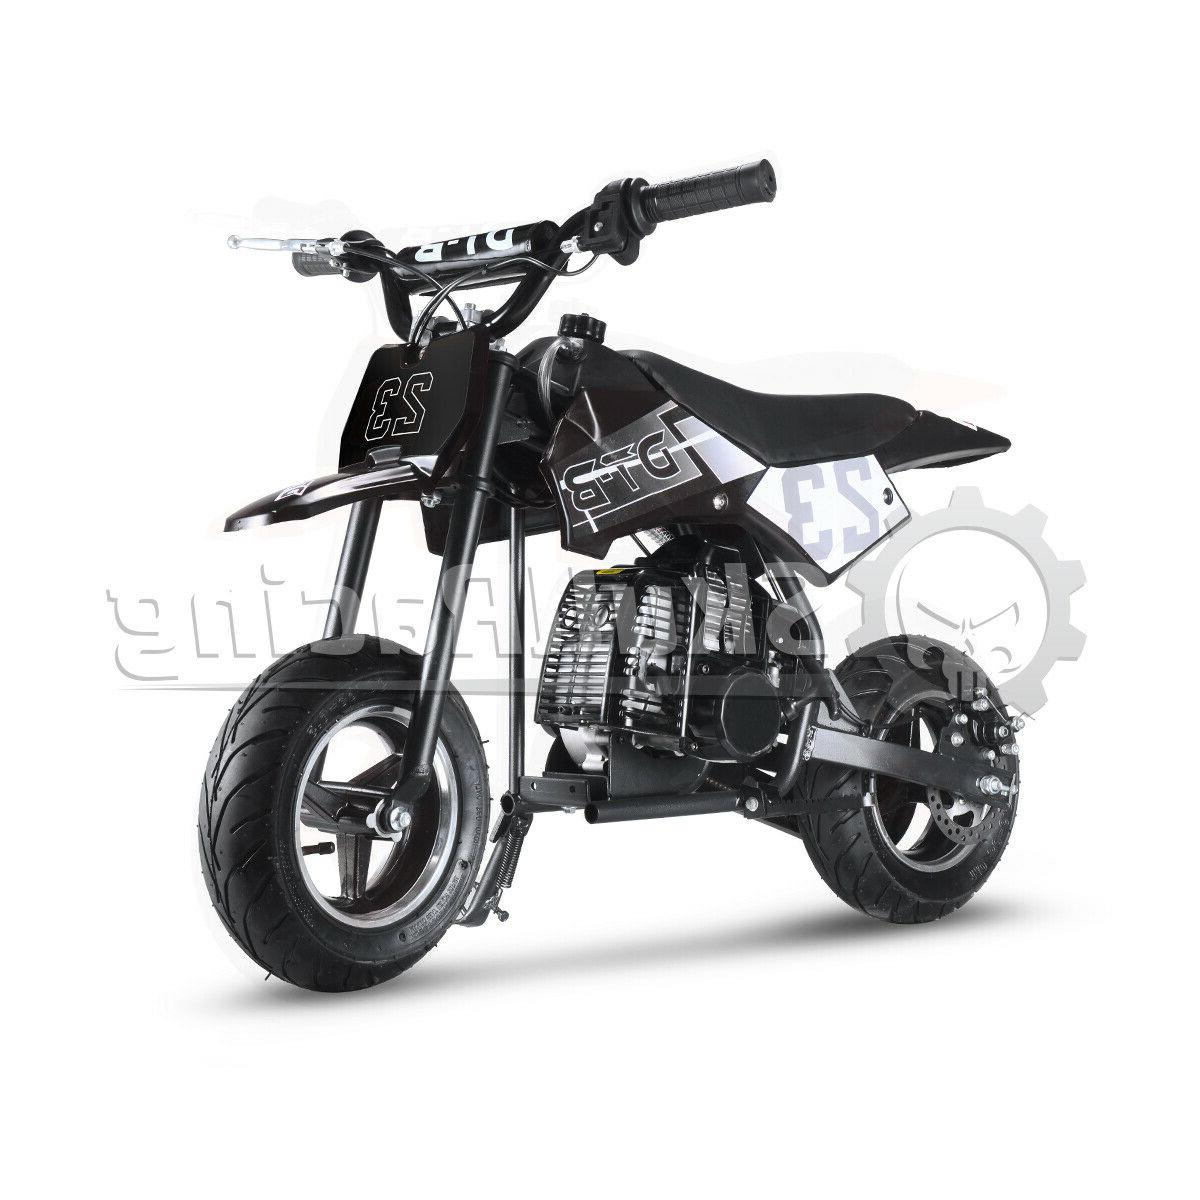 SkullRacing Powered Mini Pocket Motorcycle